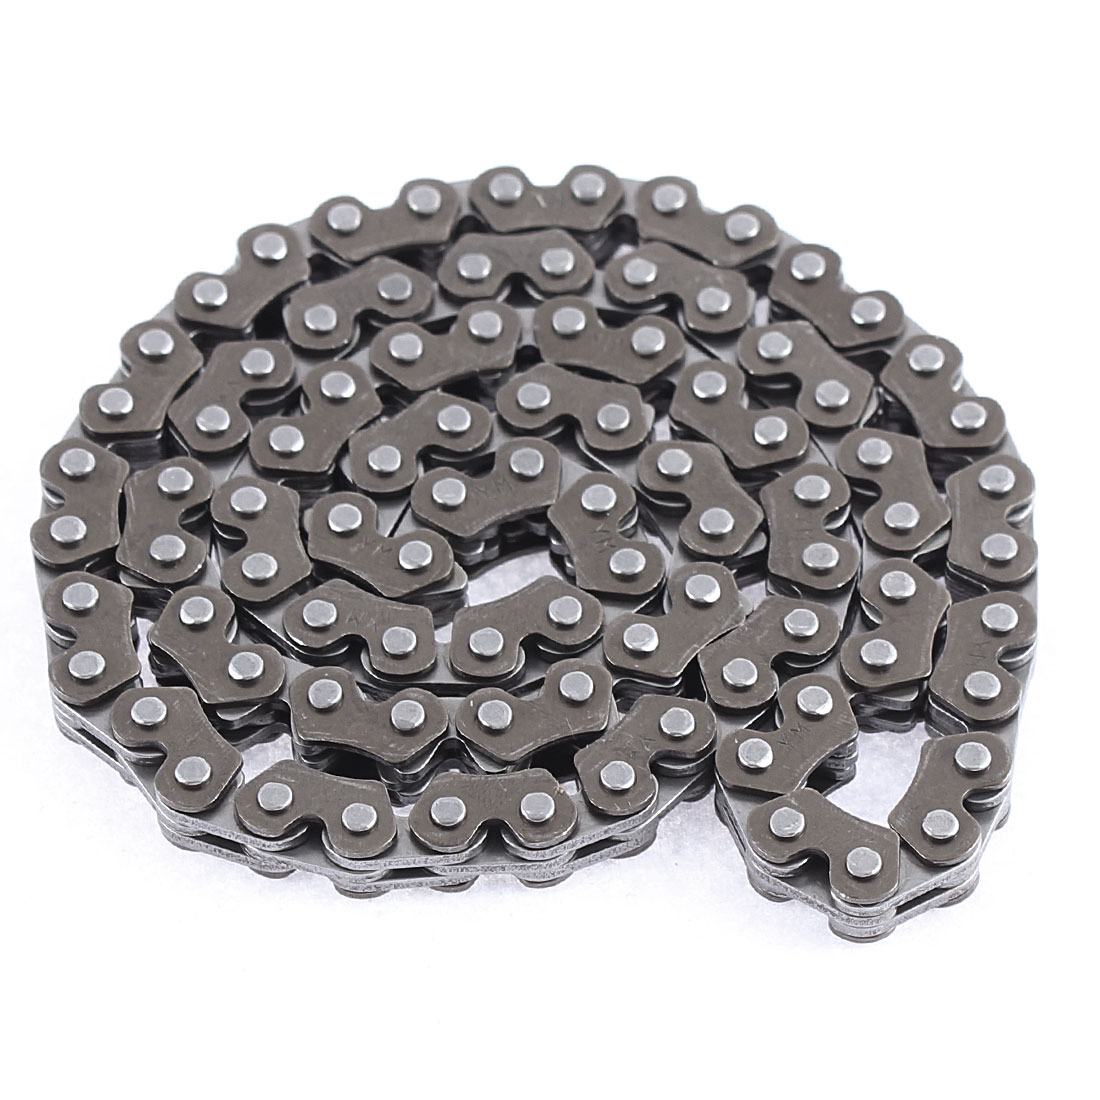 Unique BargainsMotorcycle Engine 59cm Girth 90 Link M Style Camshaft Timing Chain Dark Gray